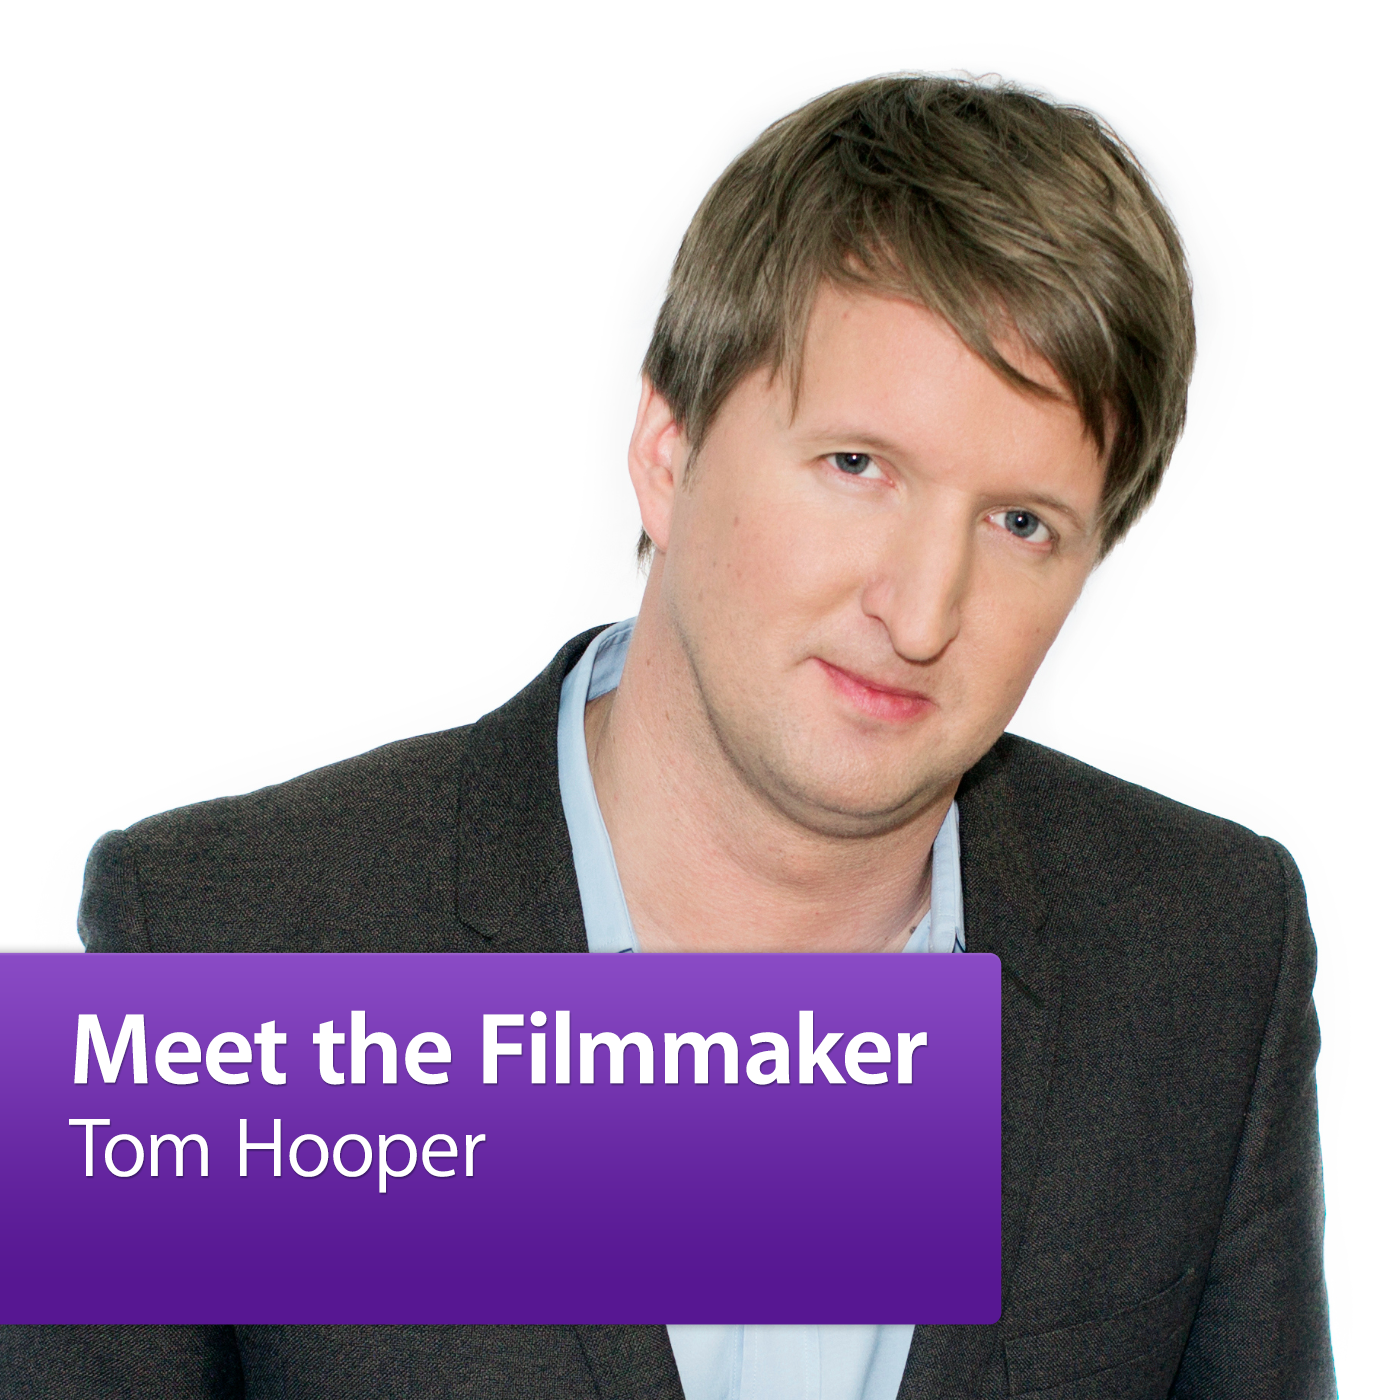 Tom Hooper: Meet the Filmmaker